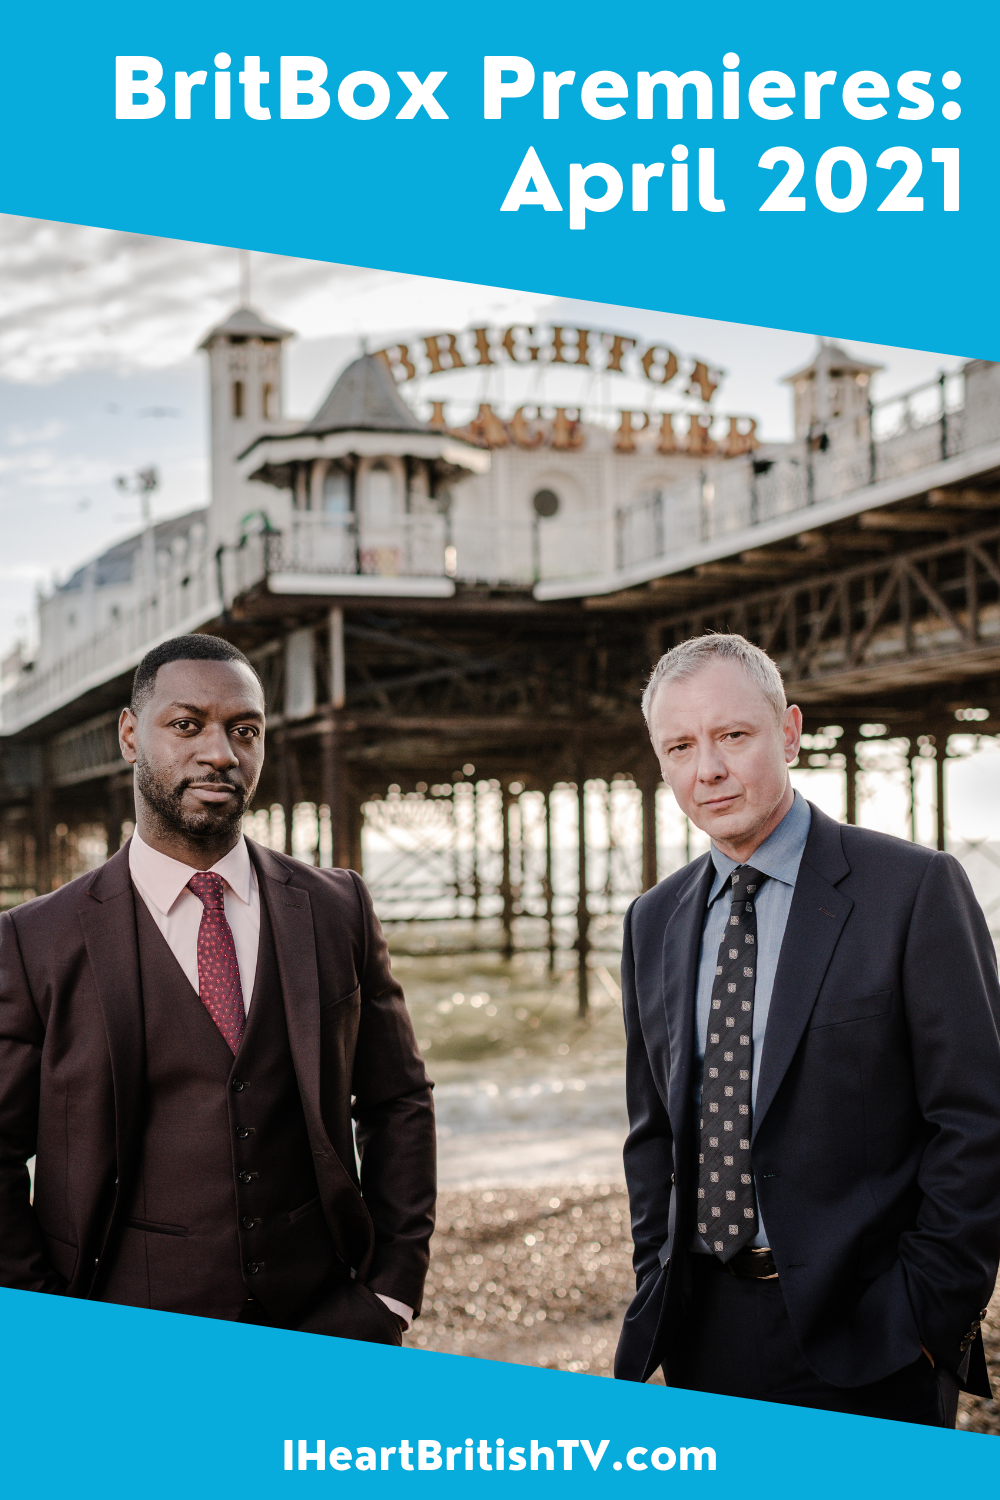 BritBox April Premieres: What's New on BritBox in April 2021? 12